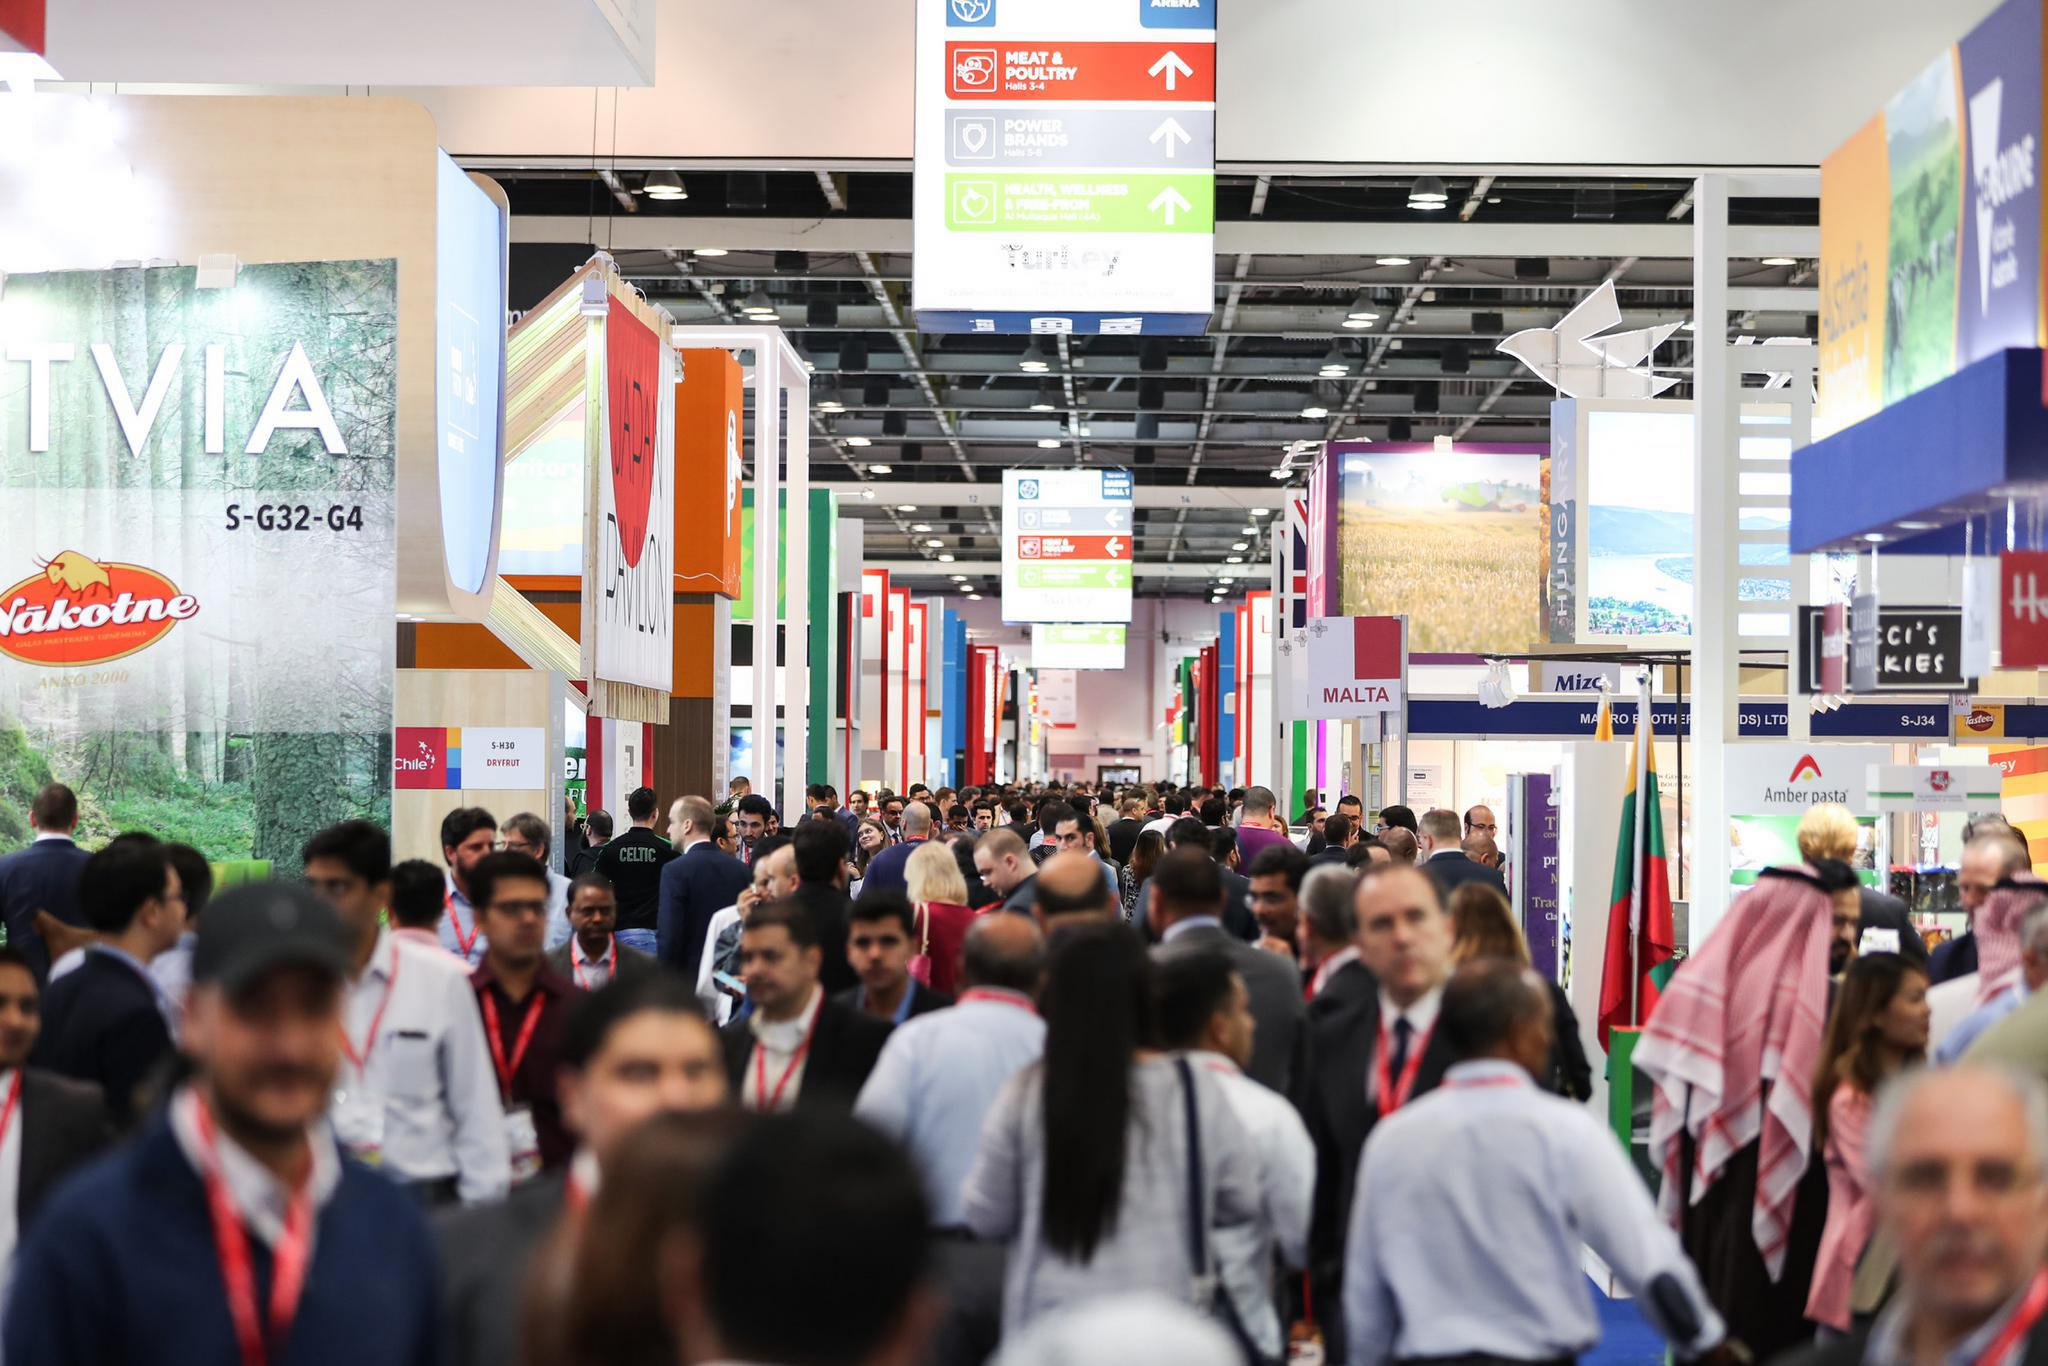 Gulfood is being held at Dubai World Trade Centre